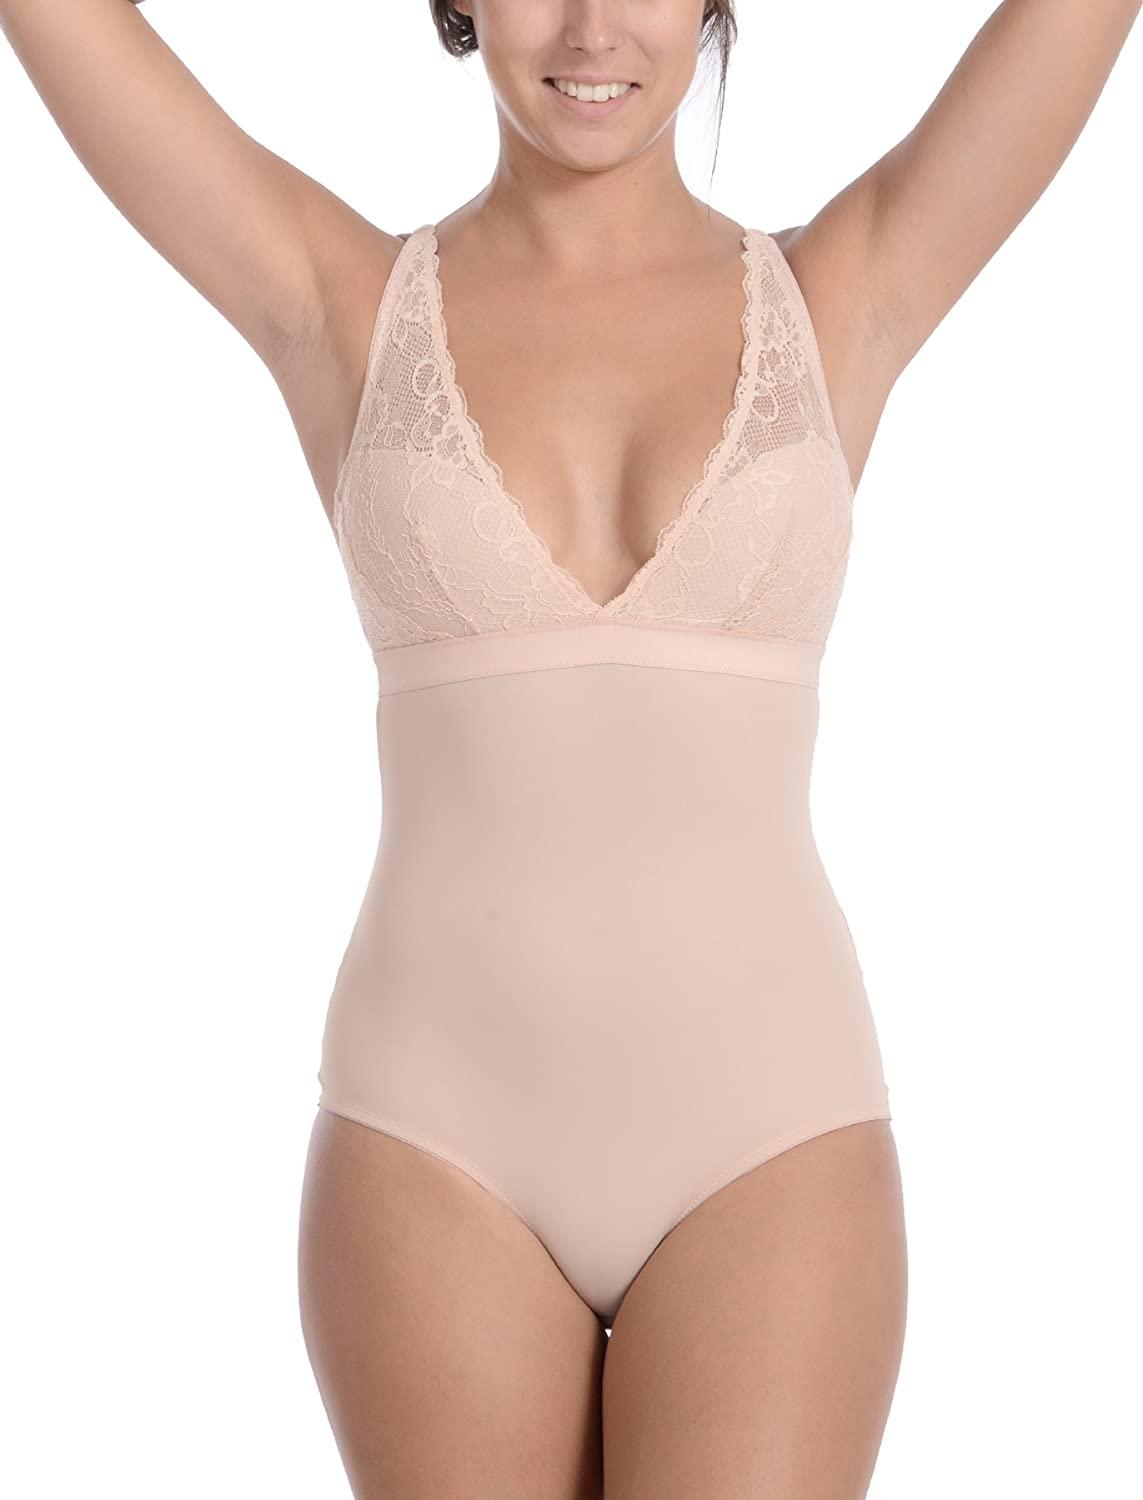 Body Beautiful Plus Size, Sexy Slimming Body Suit with Lace at Bust and Butt (Nude, 2X)